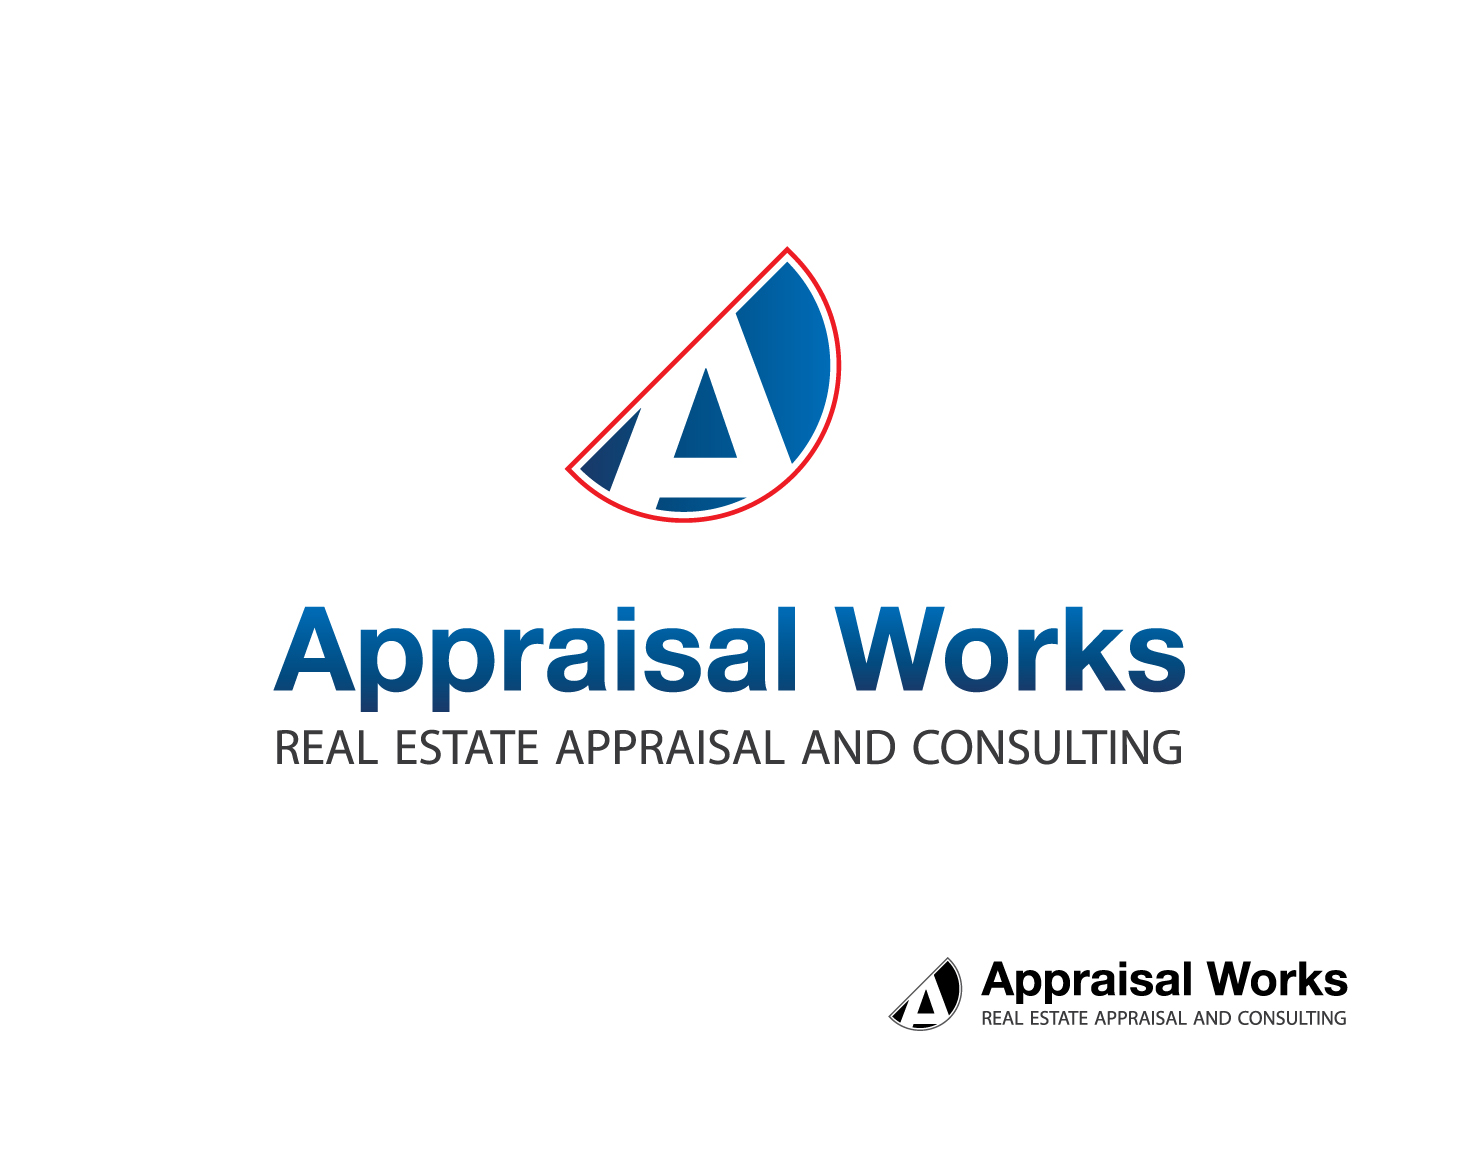 Logo Design by greypenguin - Entry No. 33 in the Logo Design Contest Appraisal Works Logo Design.